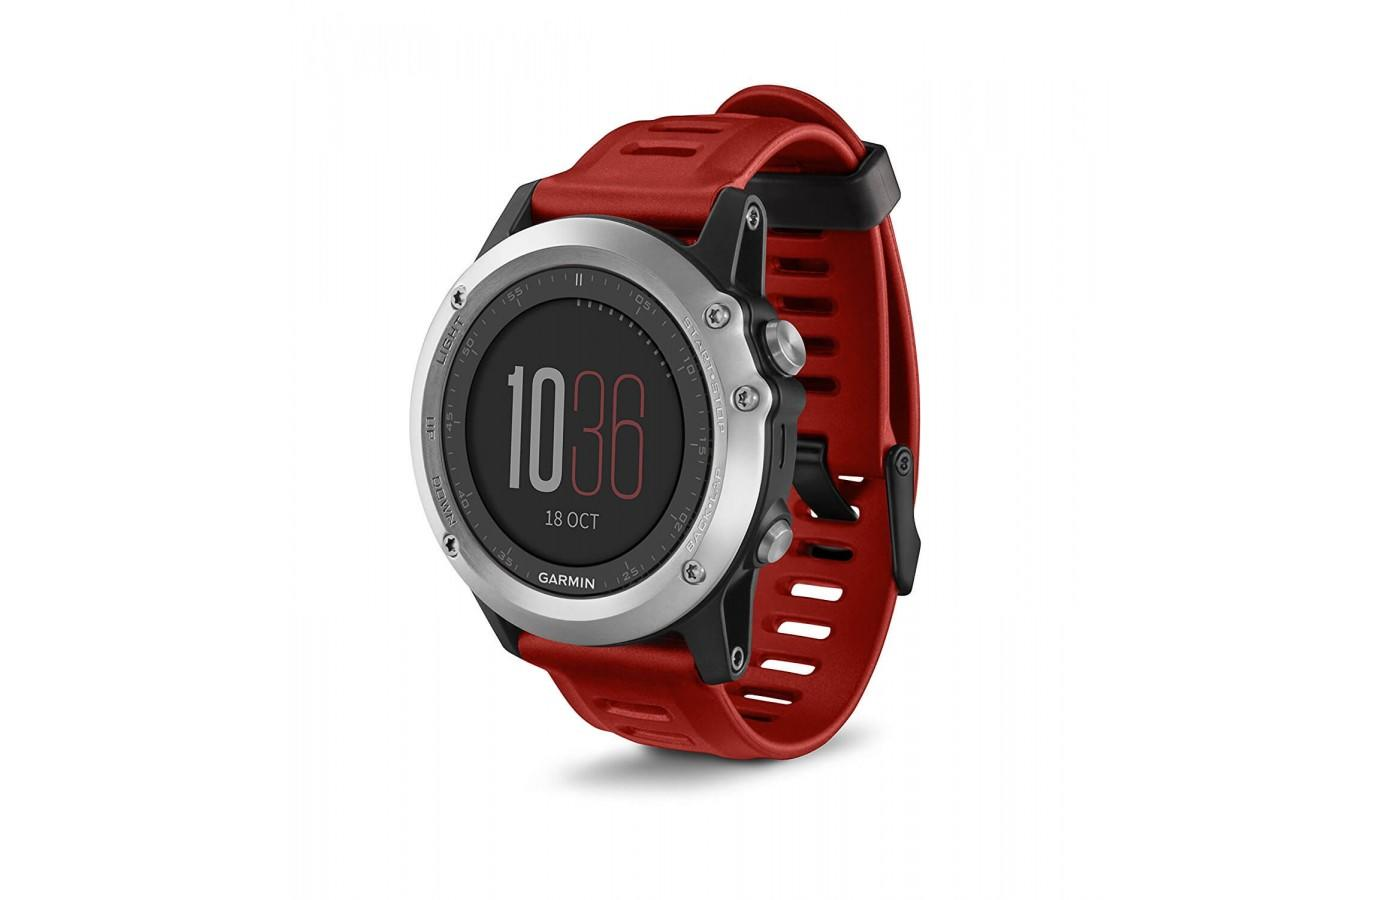 the Garmin fenix 3 is a highly versatile activity monitor